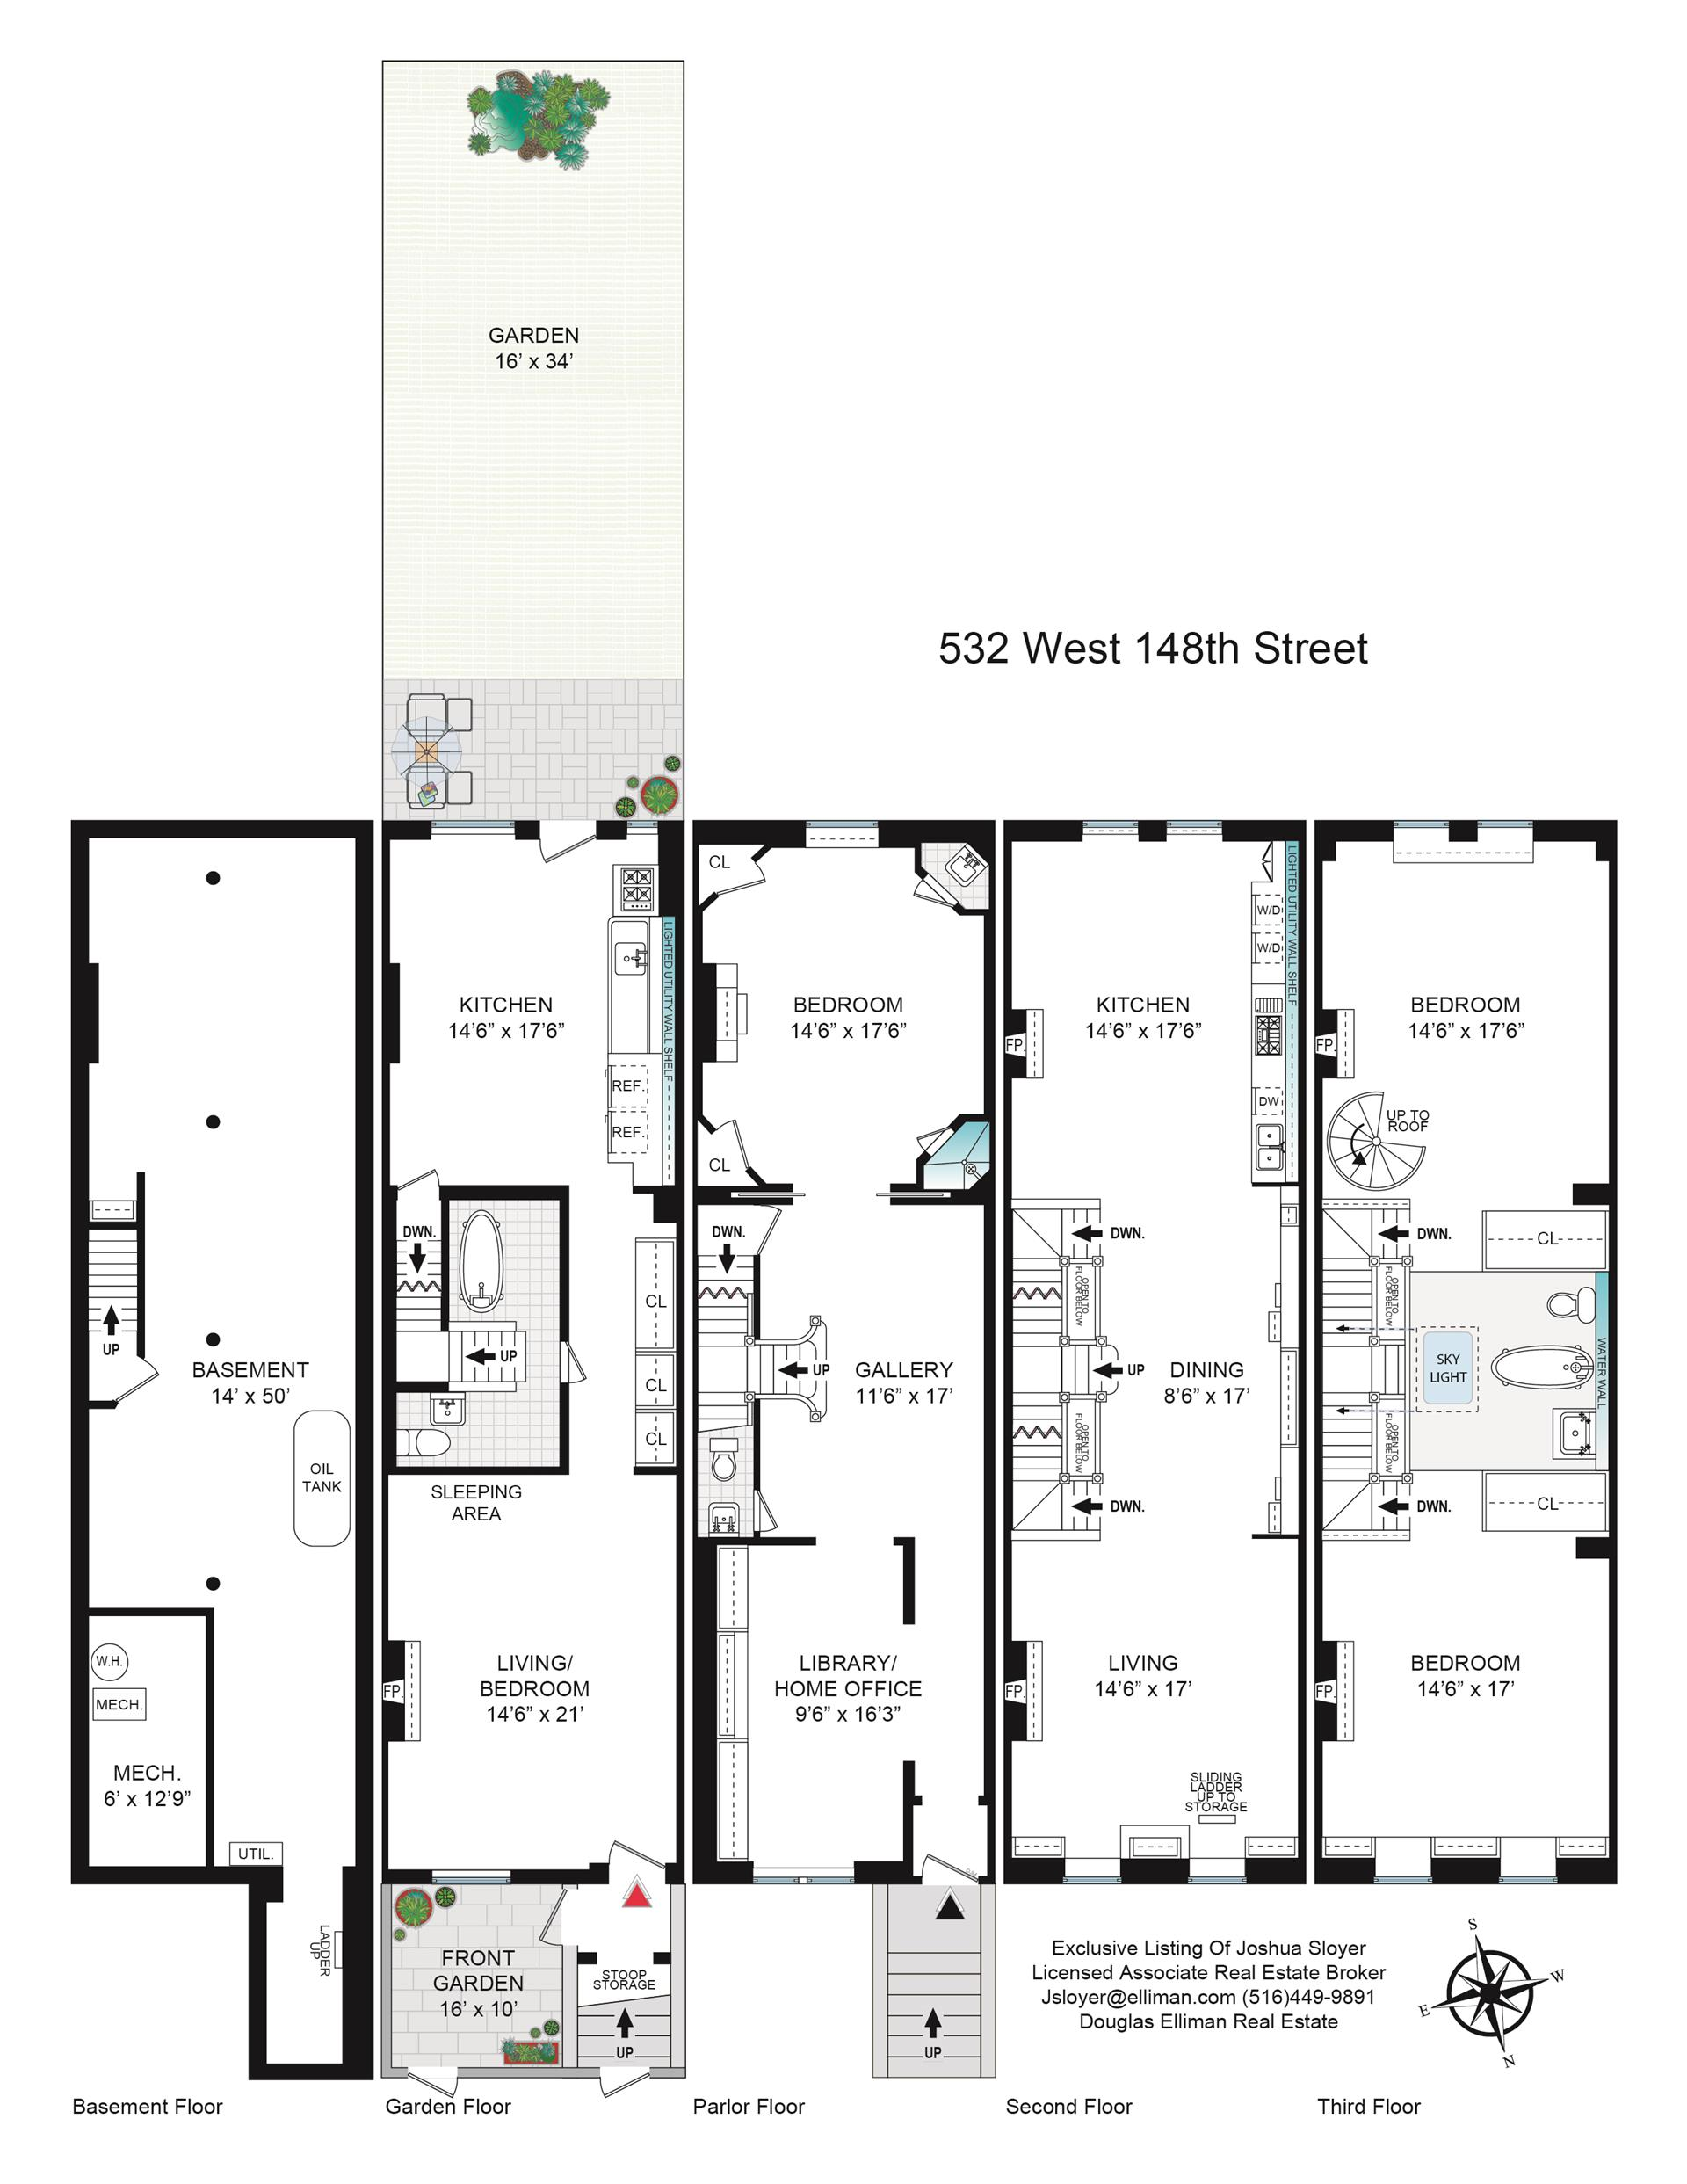 Floor plan of 532 West 148th St - Hamilton Heights, New York